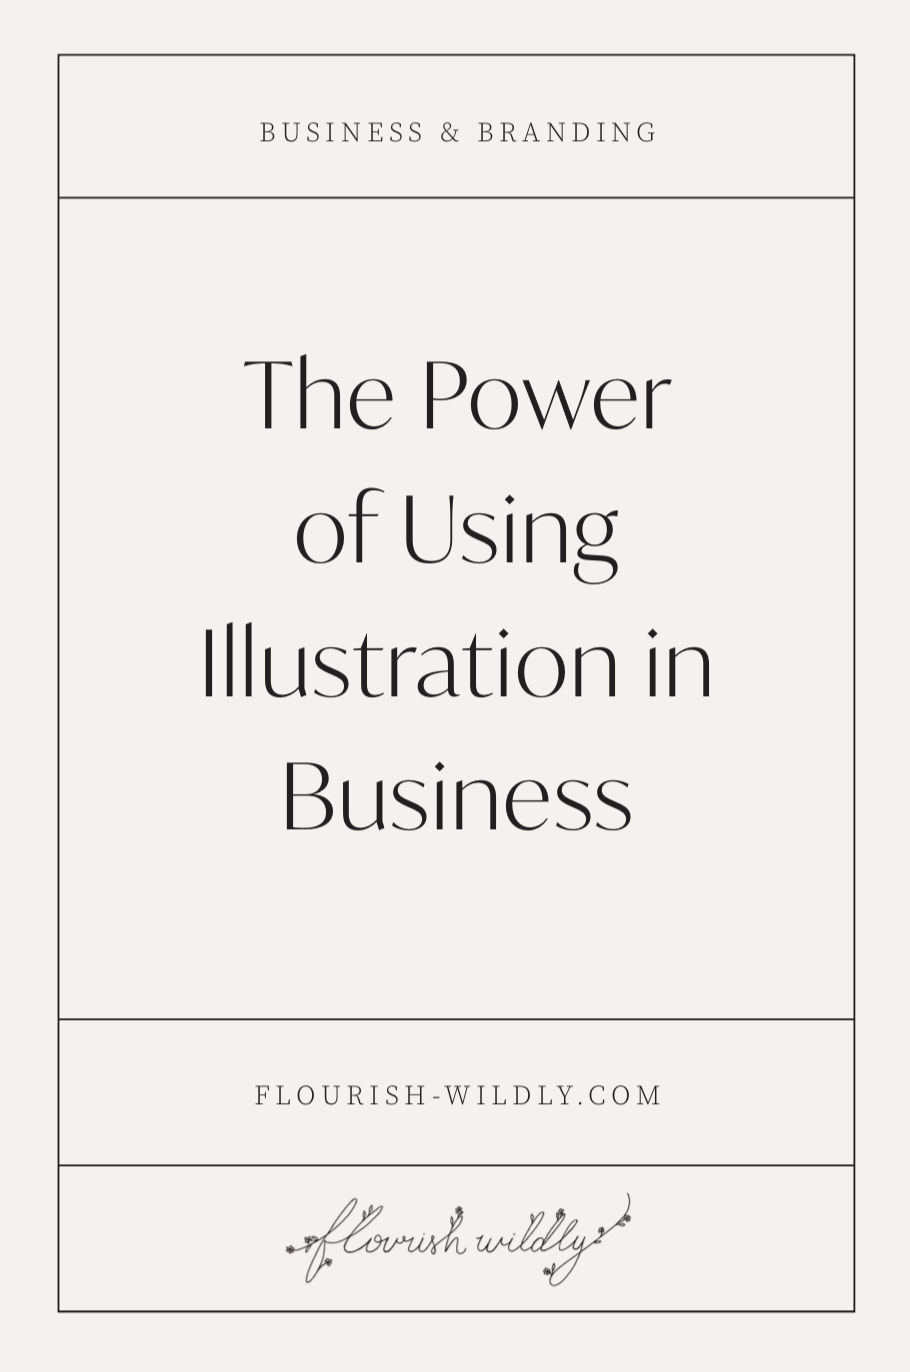 Using Illustrations for your business and why it's so powerful - a blog post by Flourish Wildly design studio